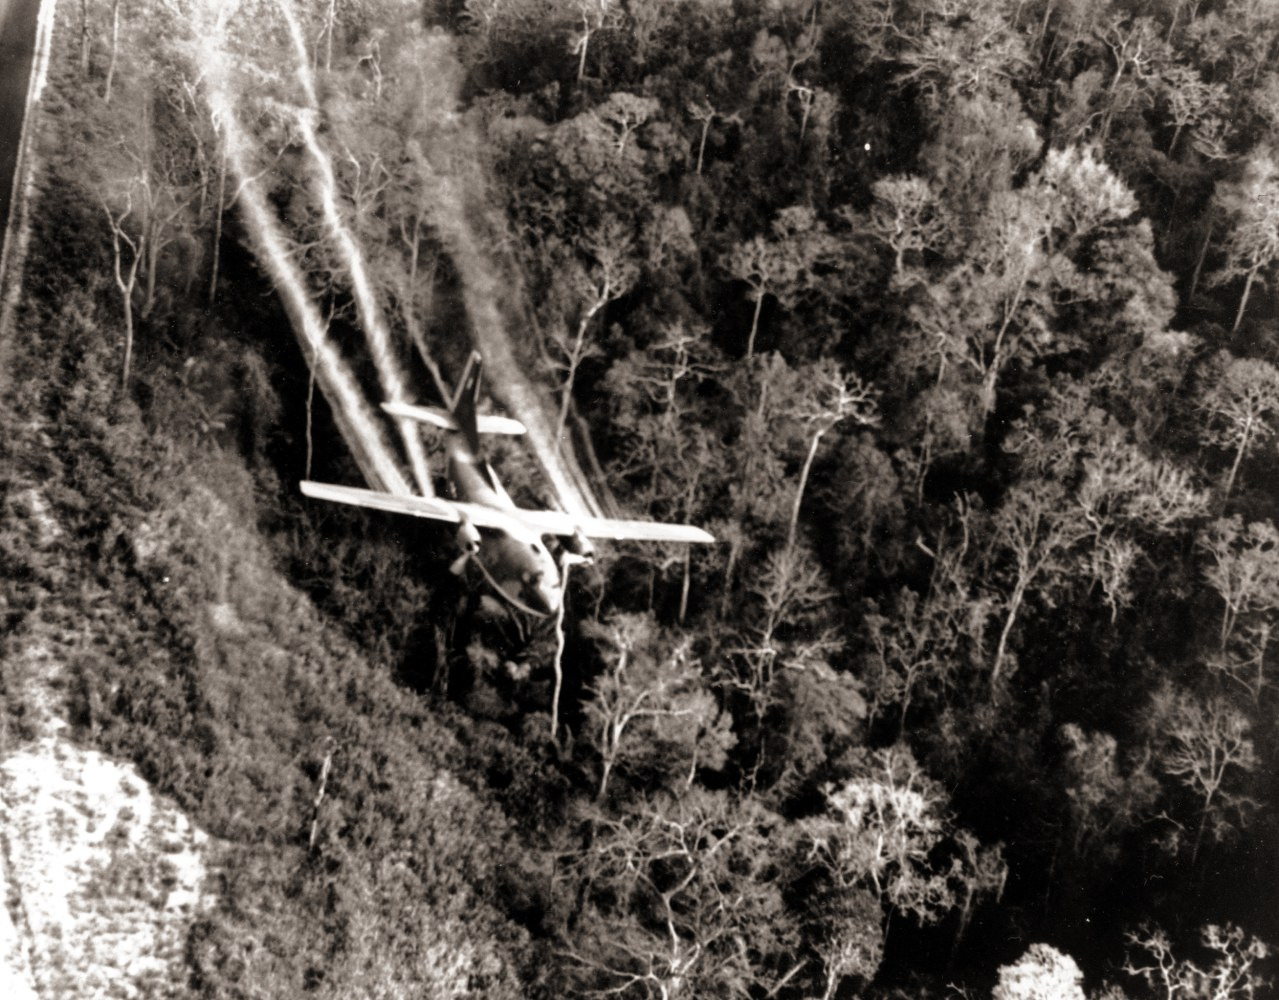 agent orange Learn more about monsanto's background with agent orange, an herbicide that was only produced for and used by the government.